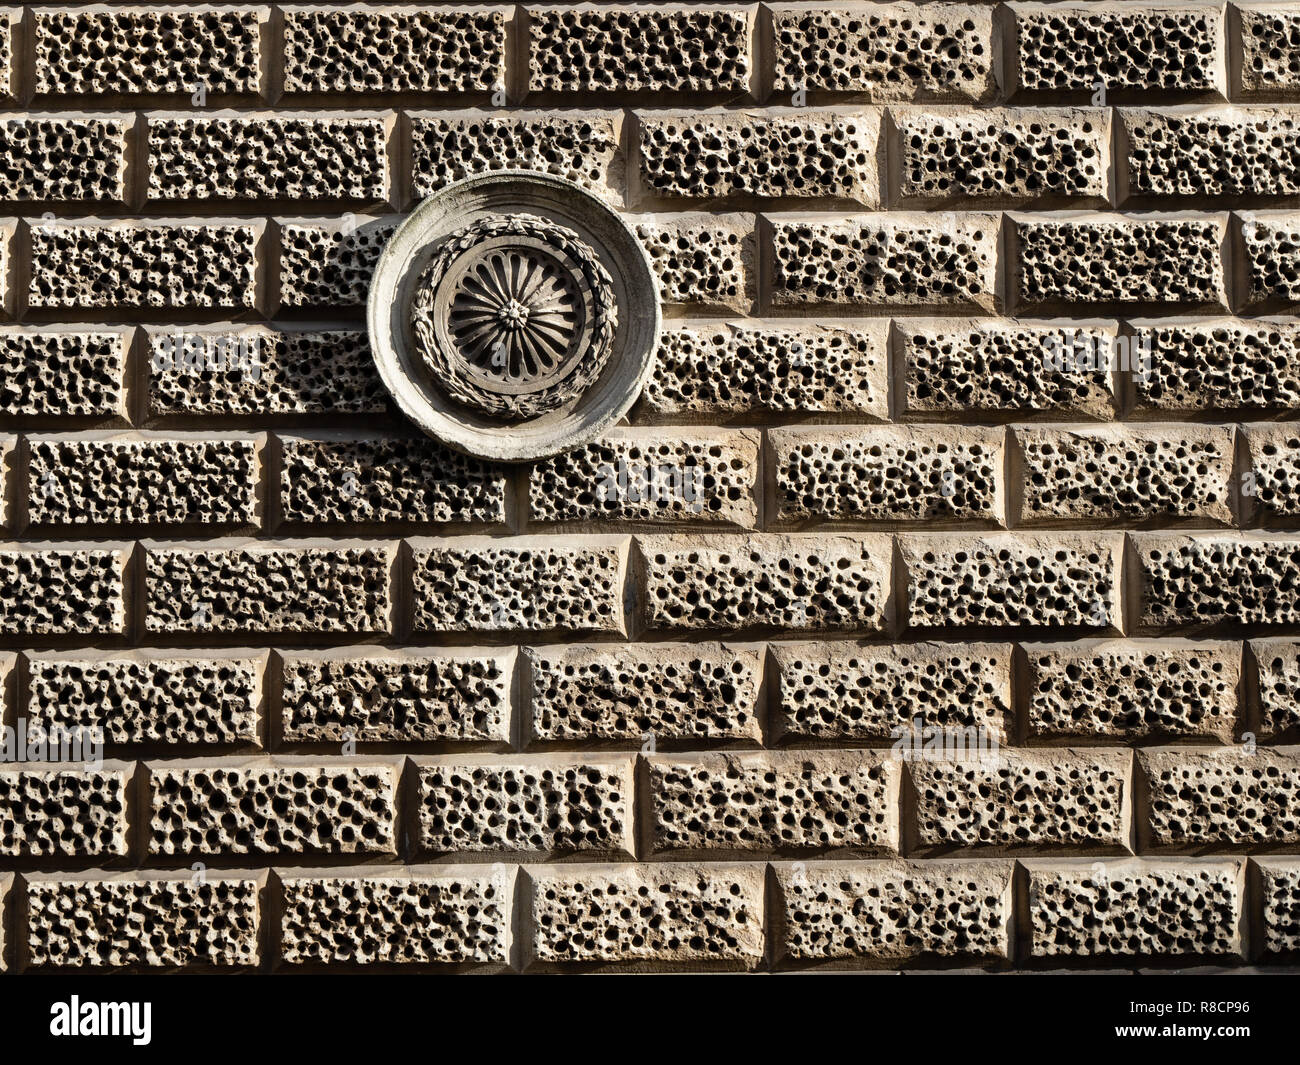 Rusticated Bath stone and sculpted roundel on the walls of a building in the city of Bath Somerset UK - Stock Image